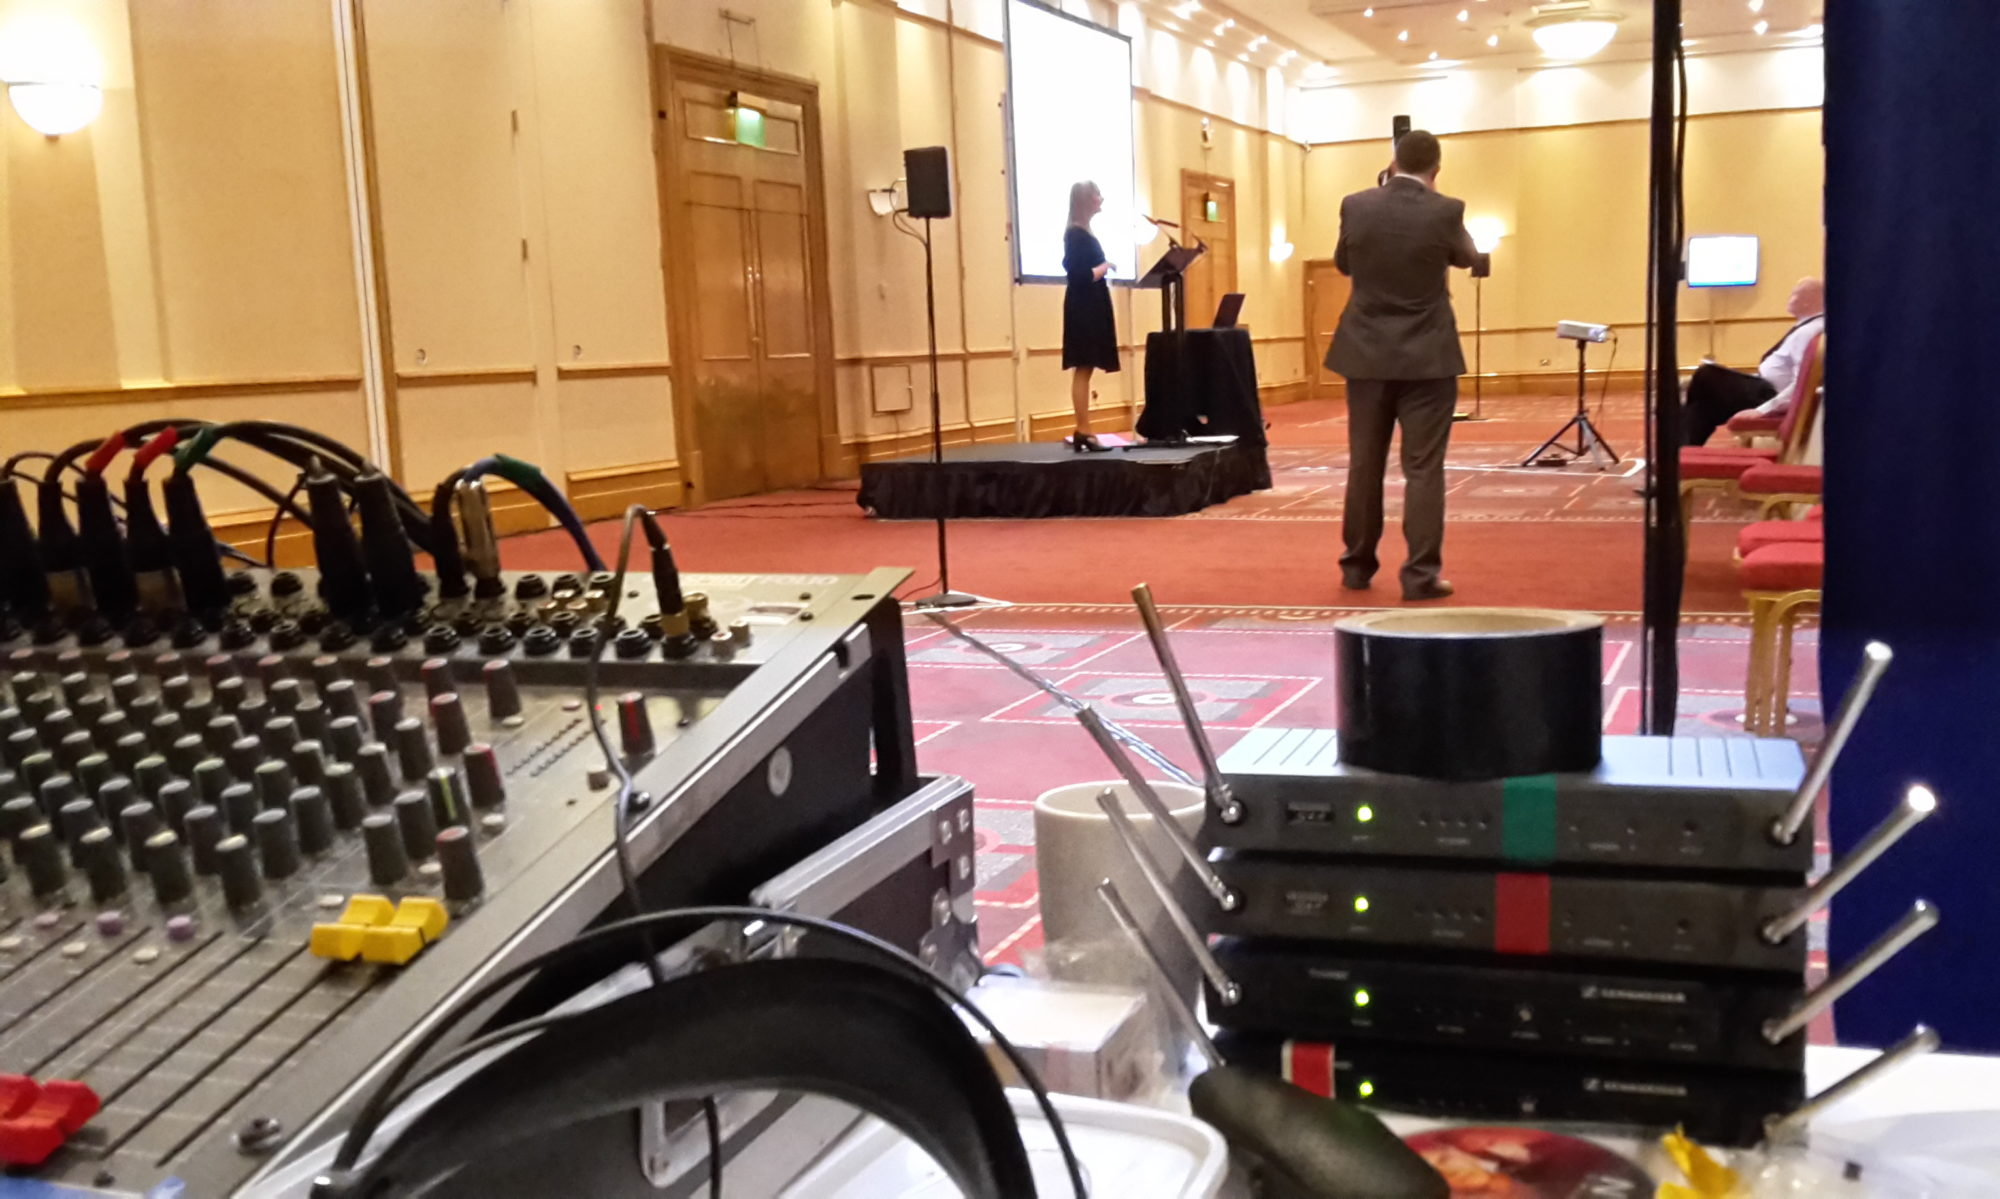 Microphones, Public Address & Sound Systems